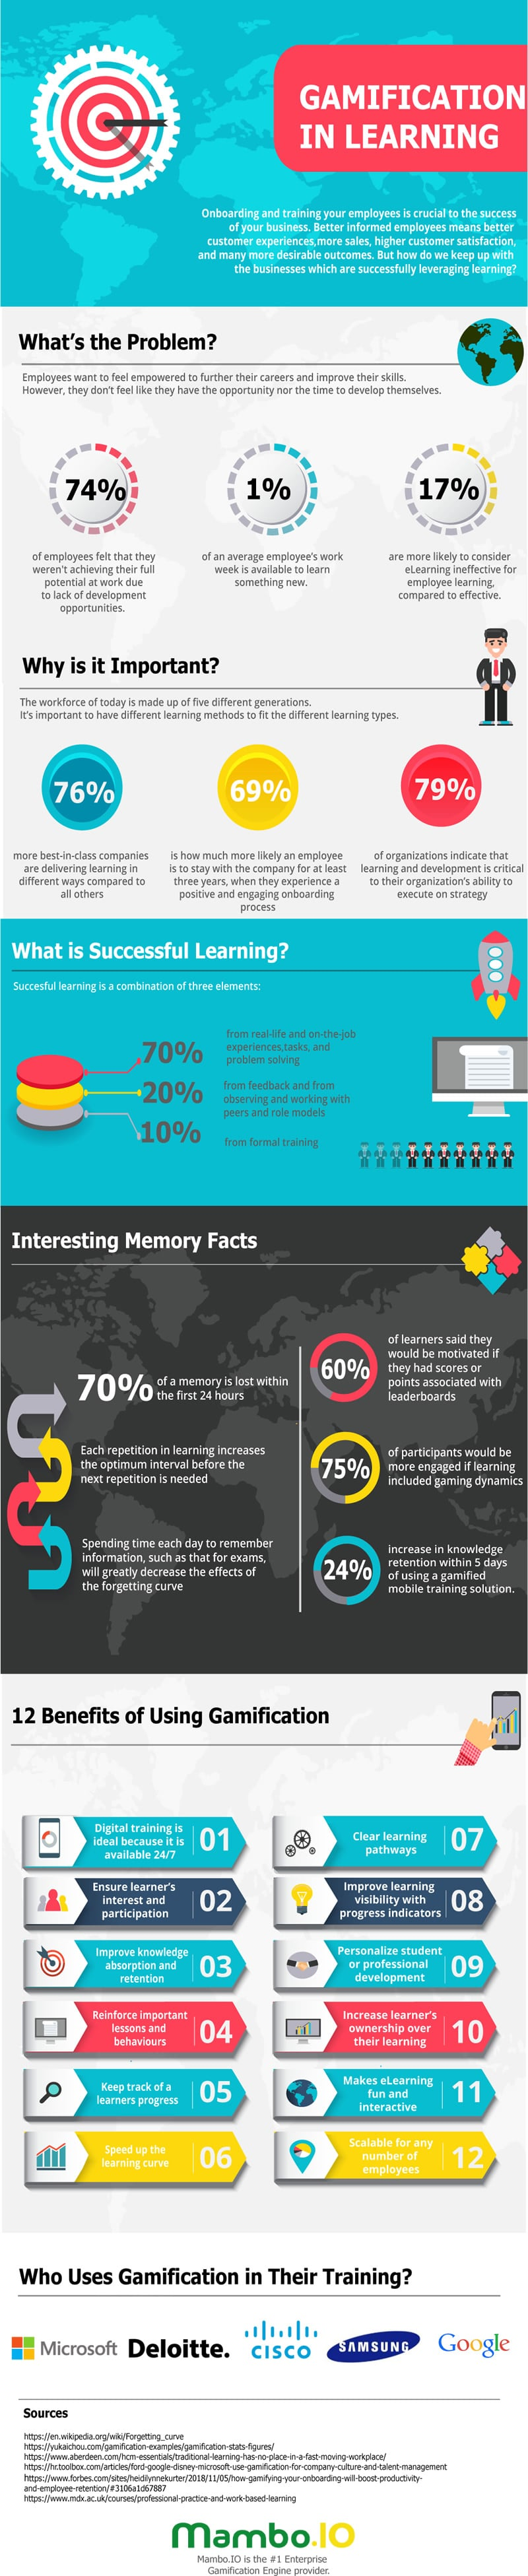 Gamification in Learning Infographic